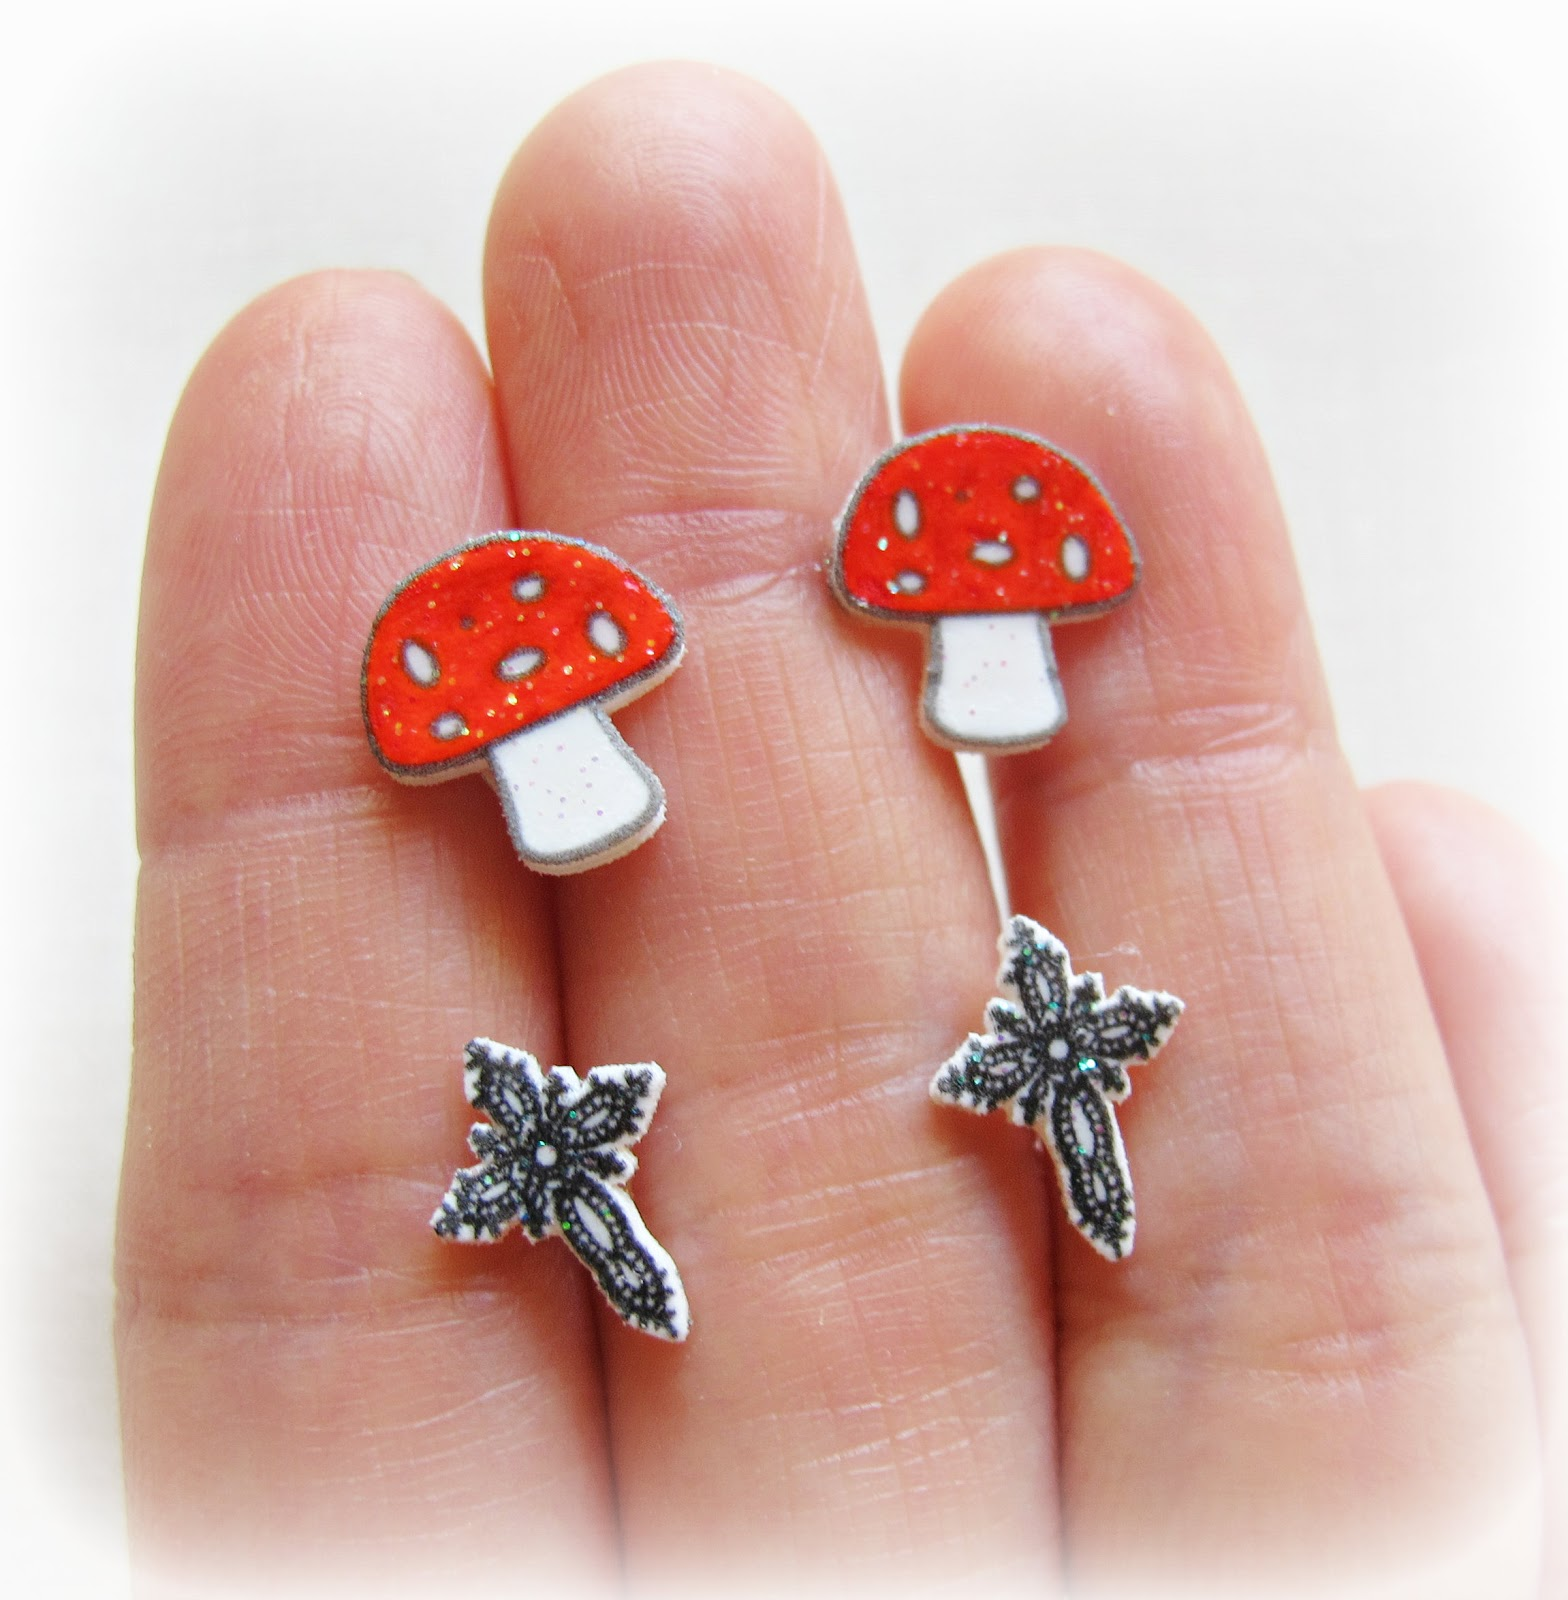 image shrink plastic earrings red toadstool mushroom fly agaric filigree cross black